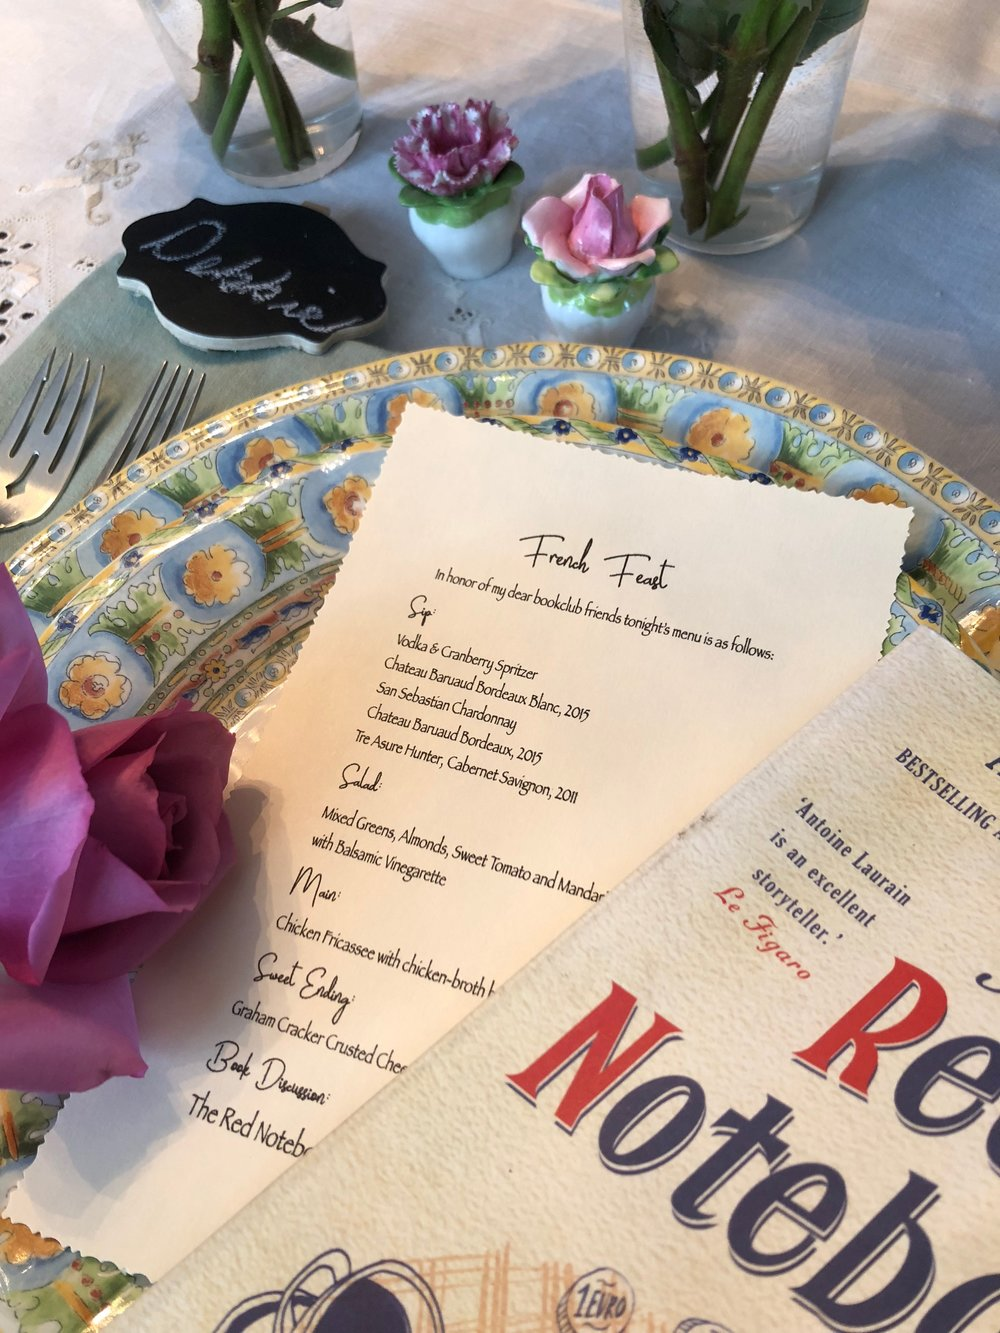 Place setting, menu, and The Red Notebook